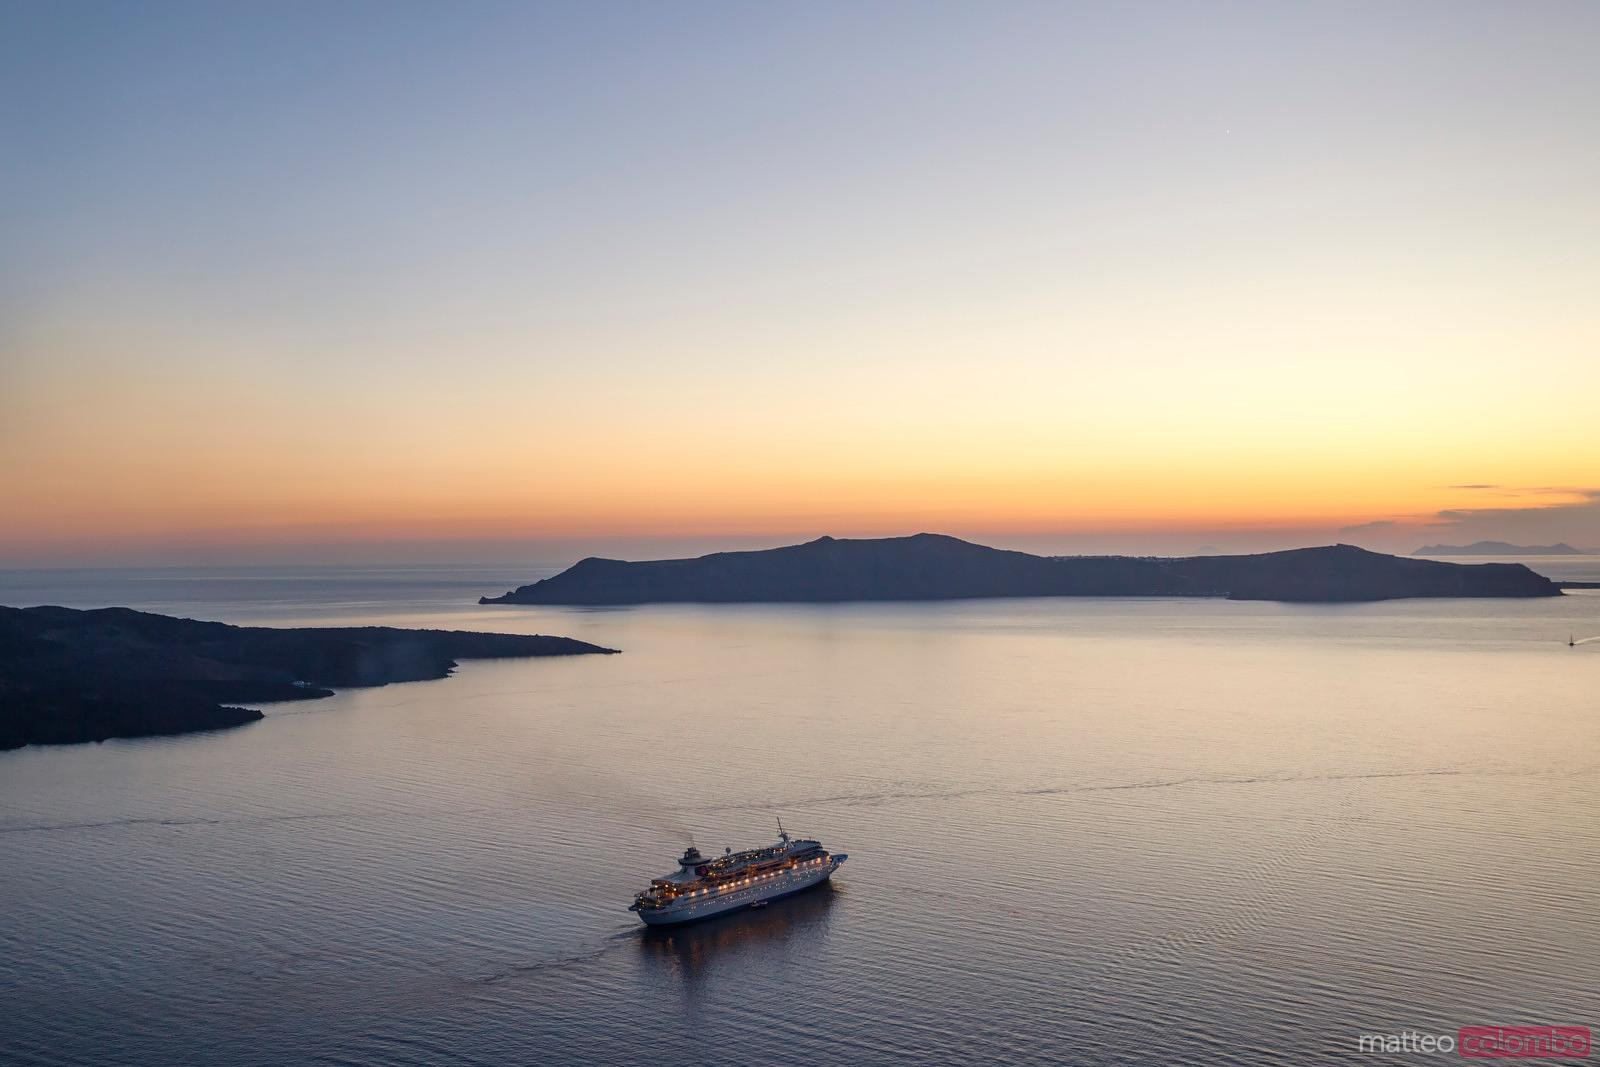 Cruise ship in the mediterranean sea at sunset